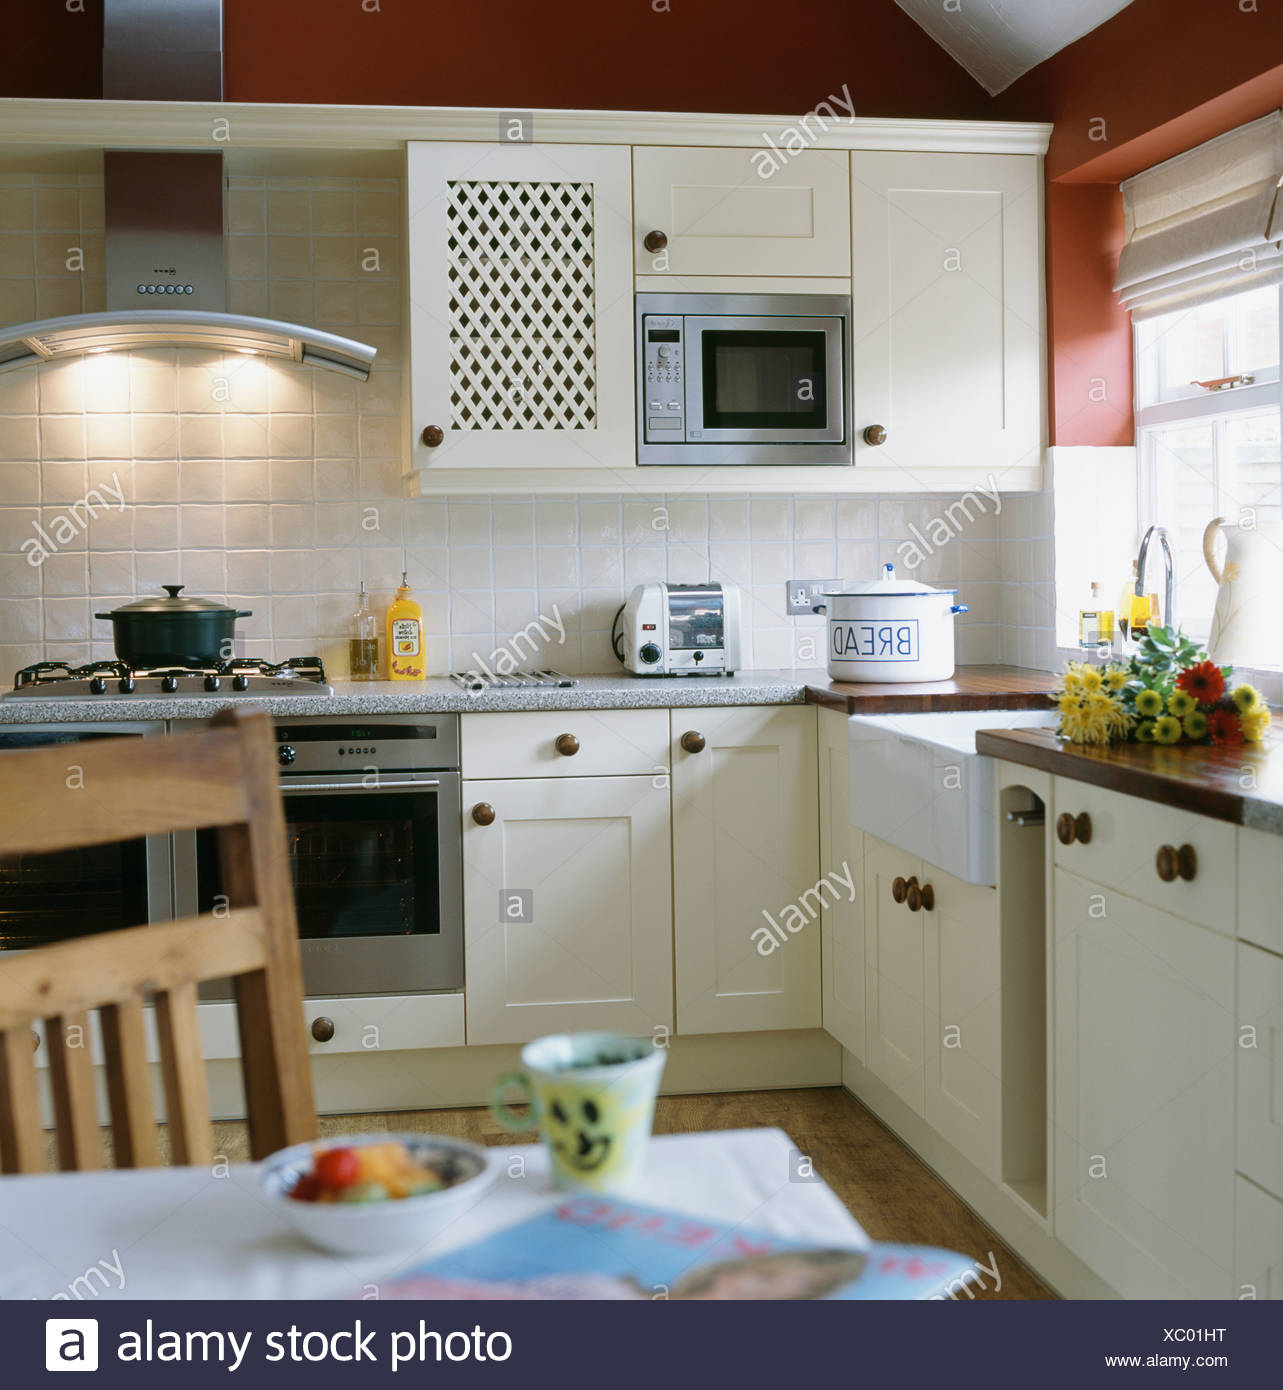 https www alamy com microwave oven fitted in wall cupboard in white cottage kitchen dining room with lighted extractor fan above range oven image282743044 html